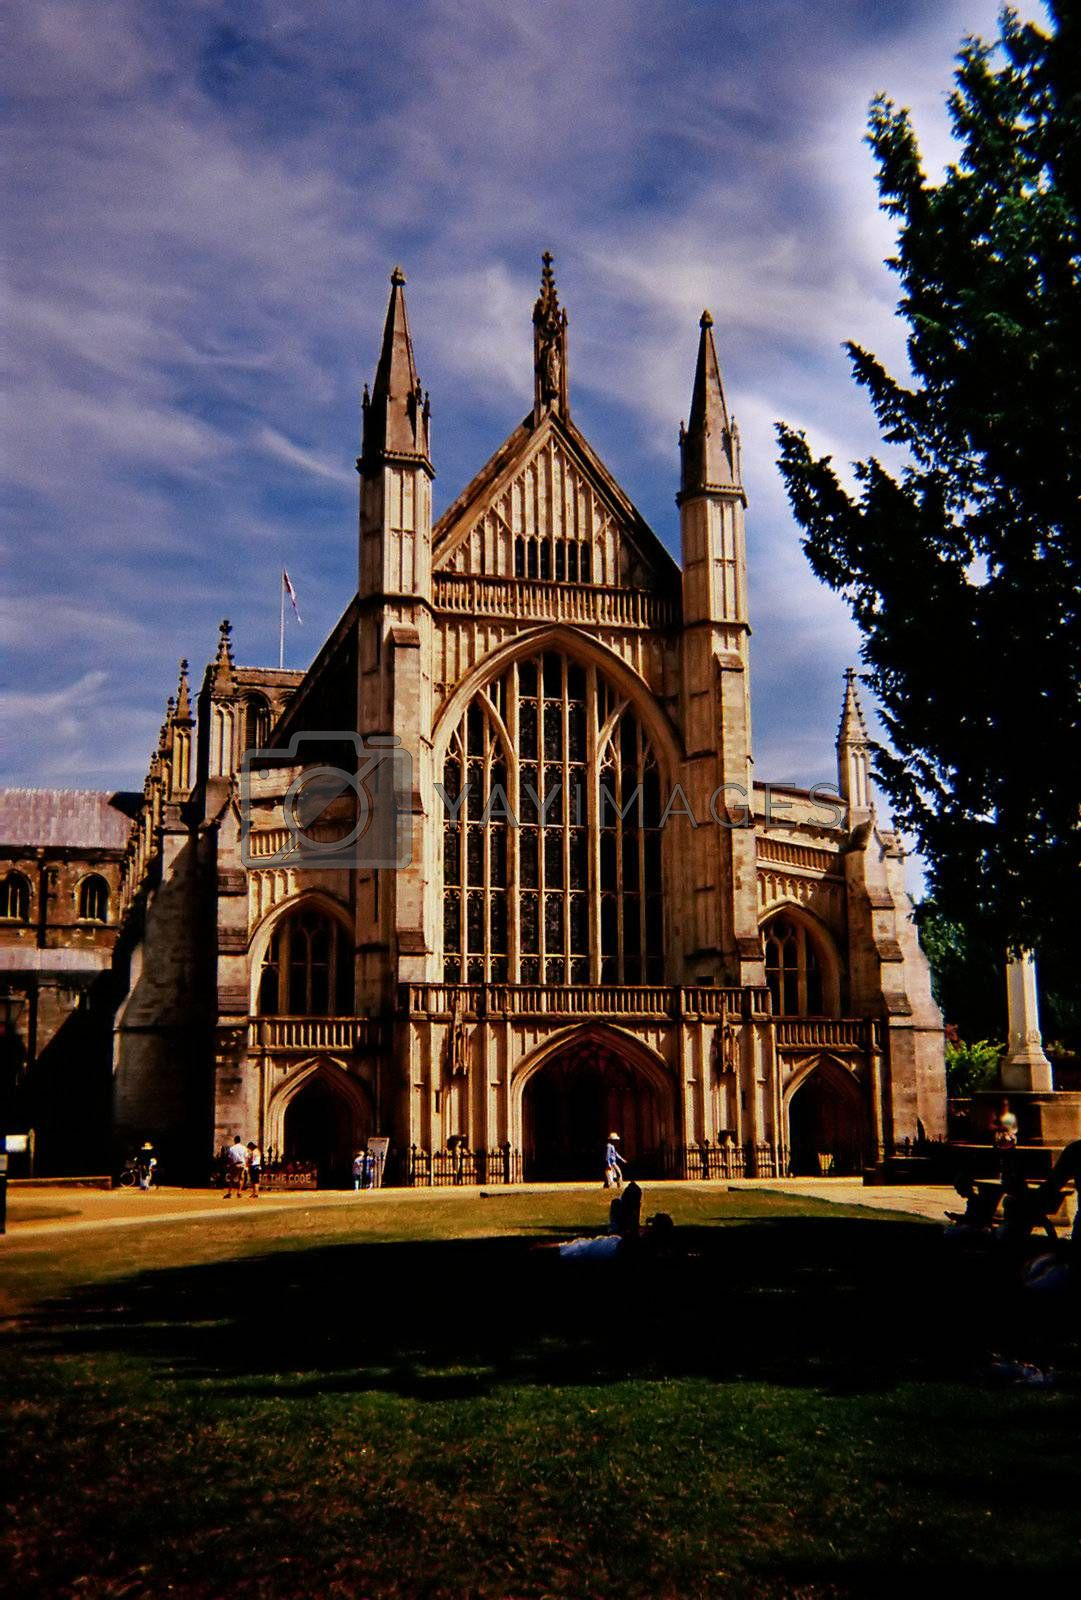 Winchester Cathedral v1 by mwp1969